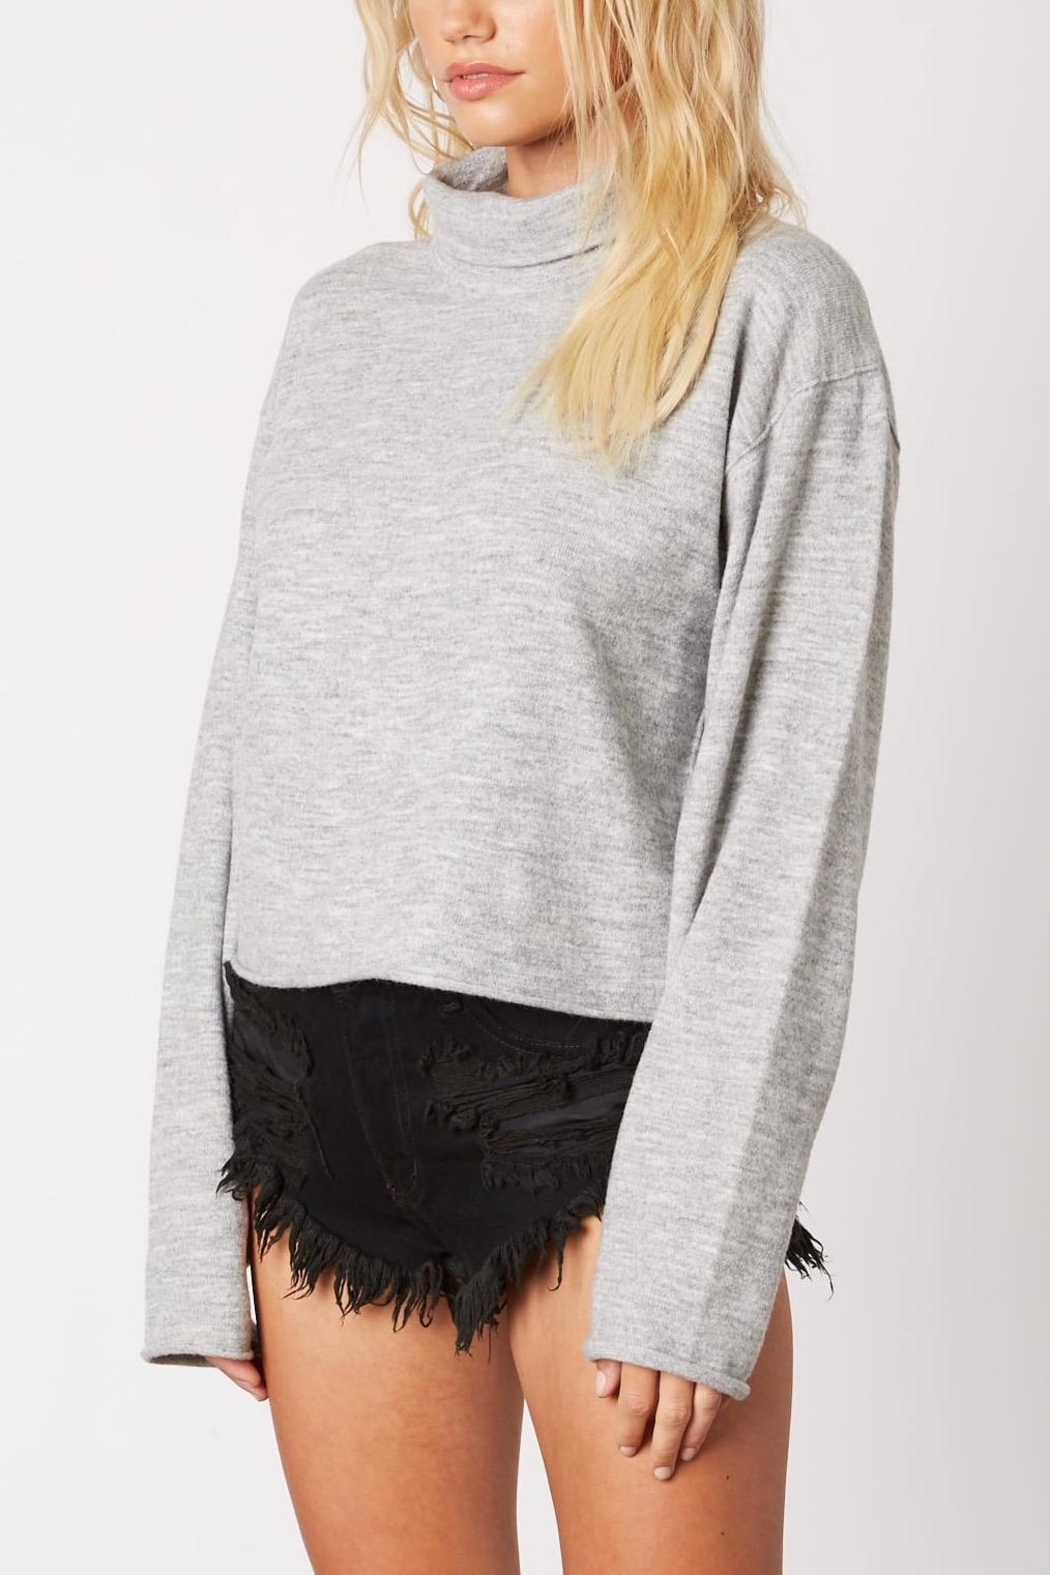 Cotton Candy Cropped Turtleneck Sweater - Side Cropped Image